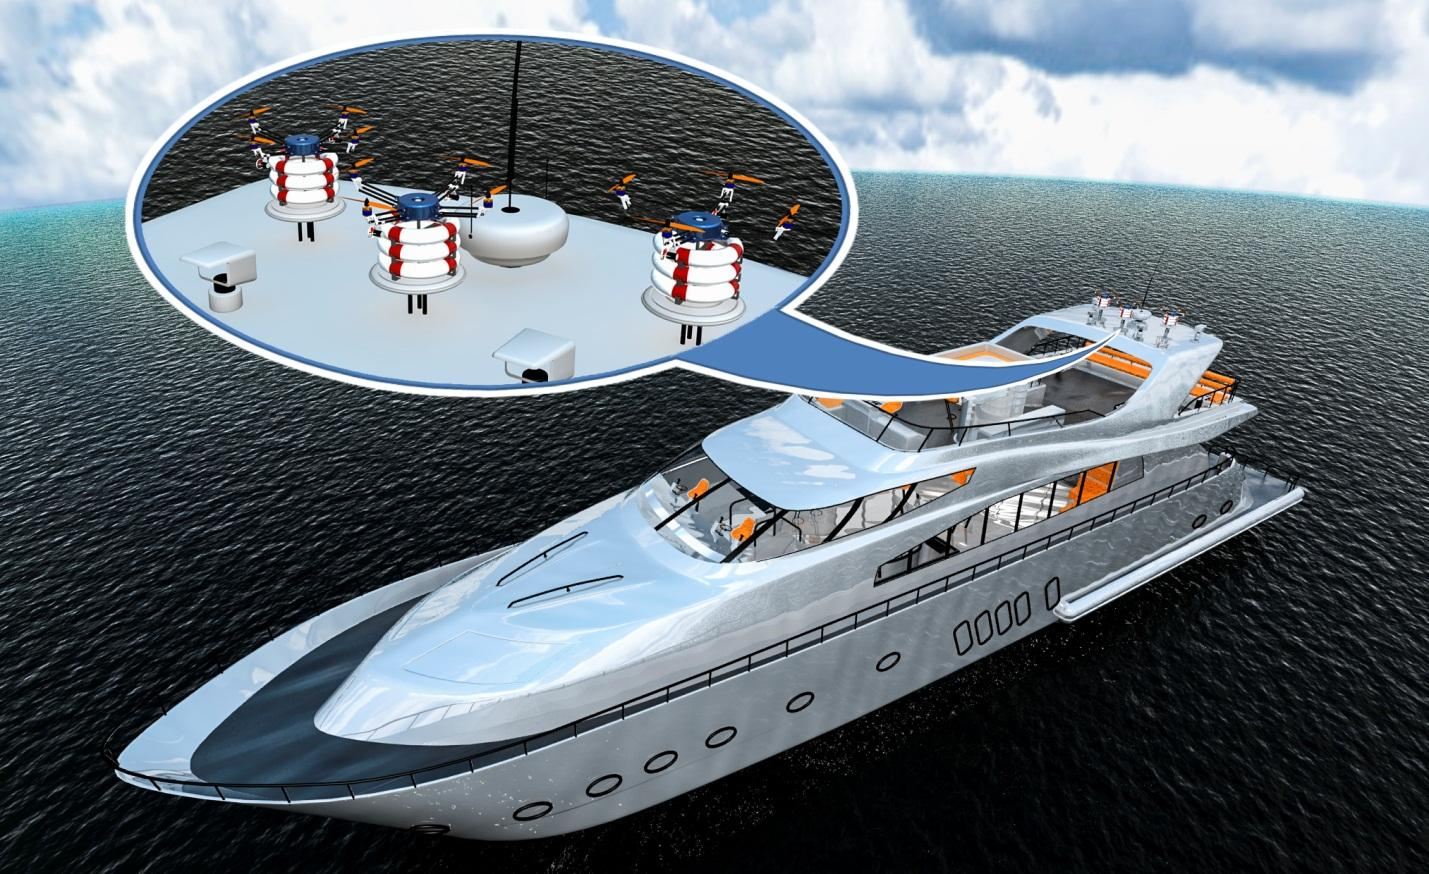 The designers claim the charging platform could be attached to the top of a rescue boat or offshore structure